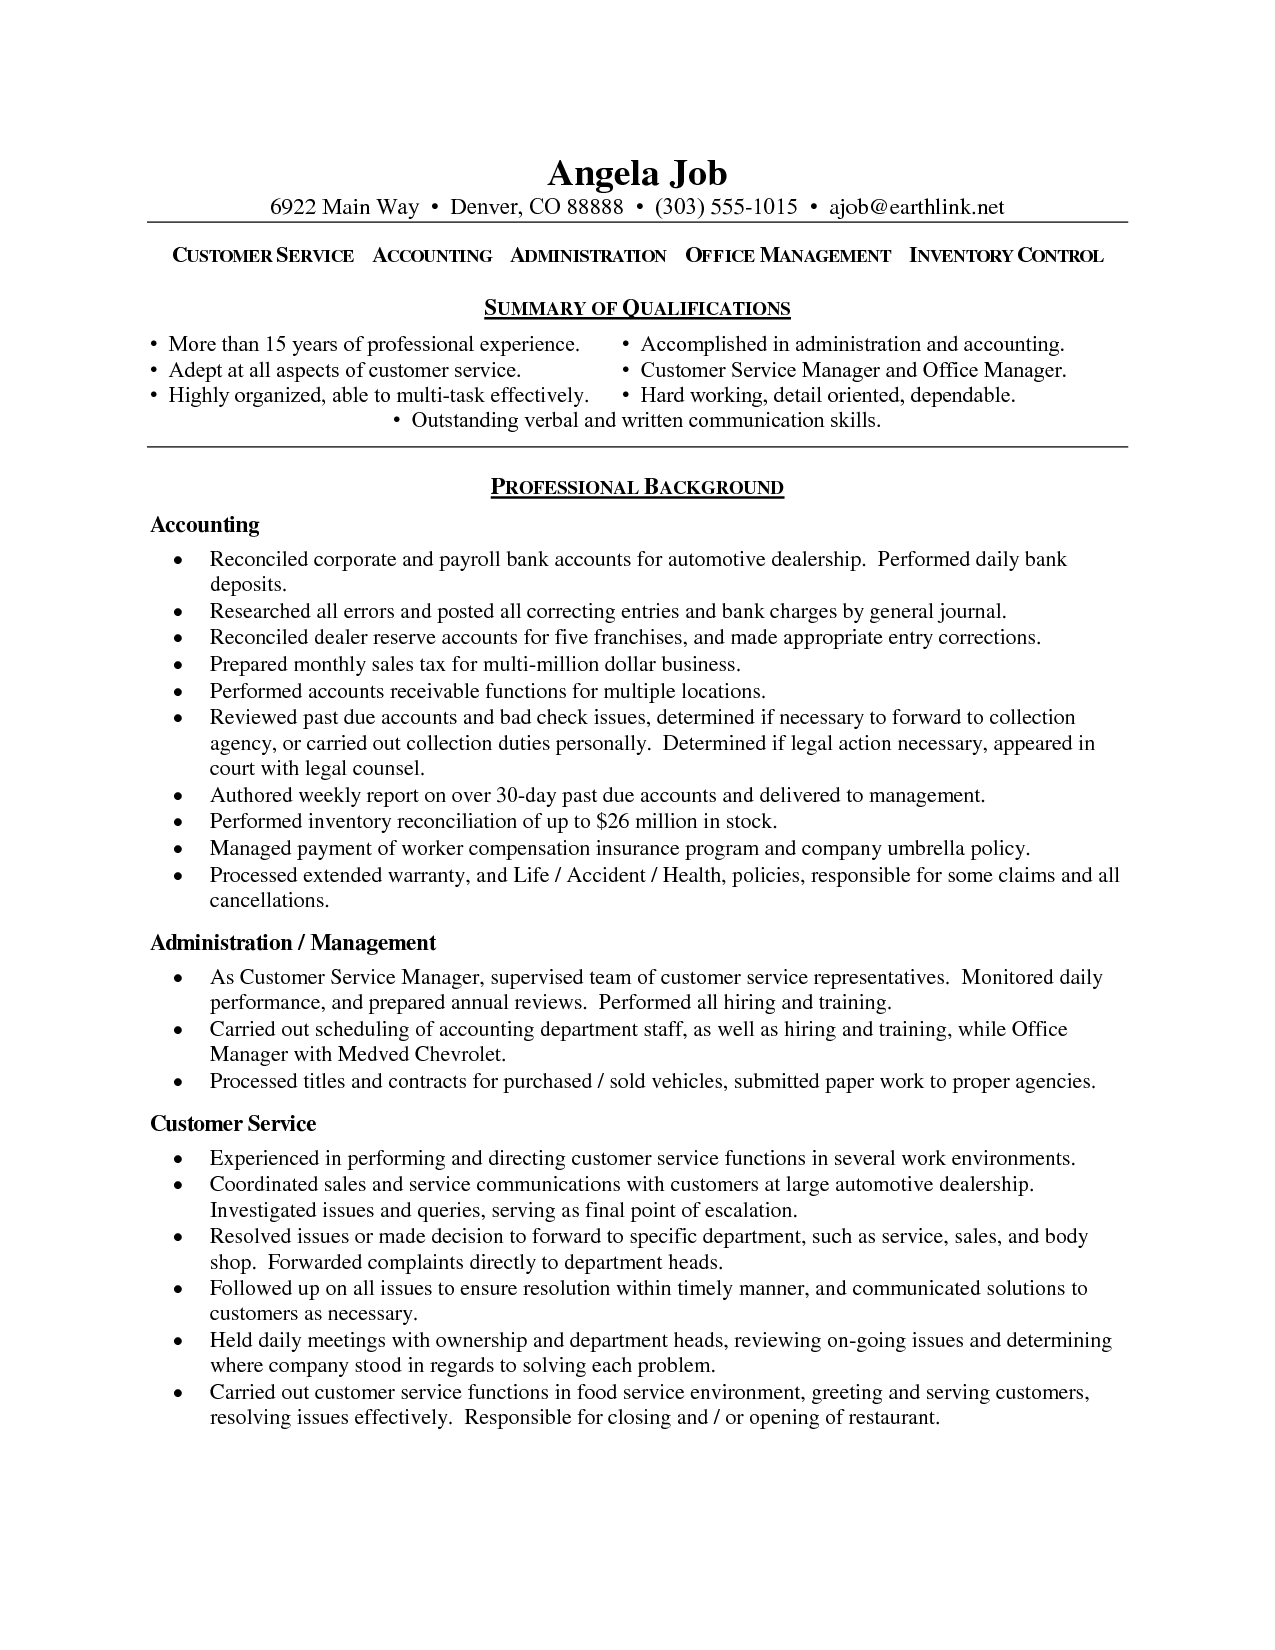 Customer Service Resume – Objective for Resume for Customer Service